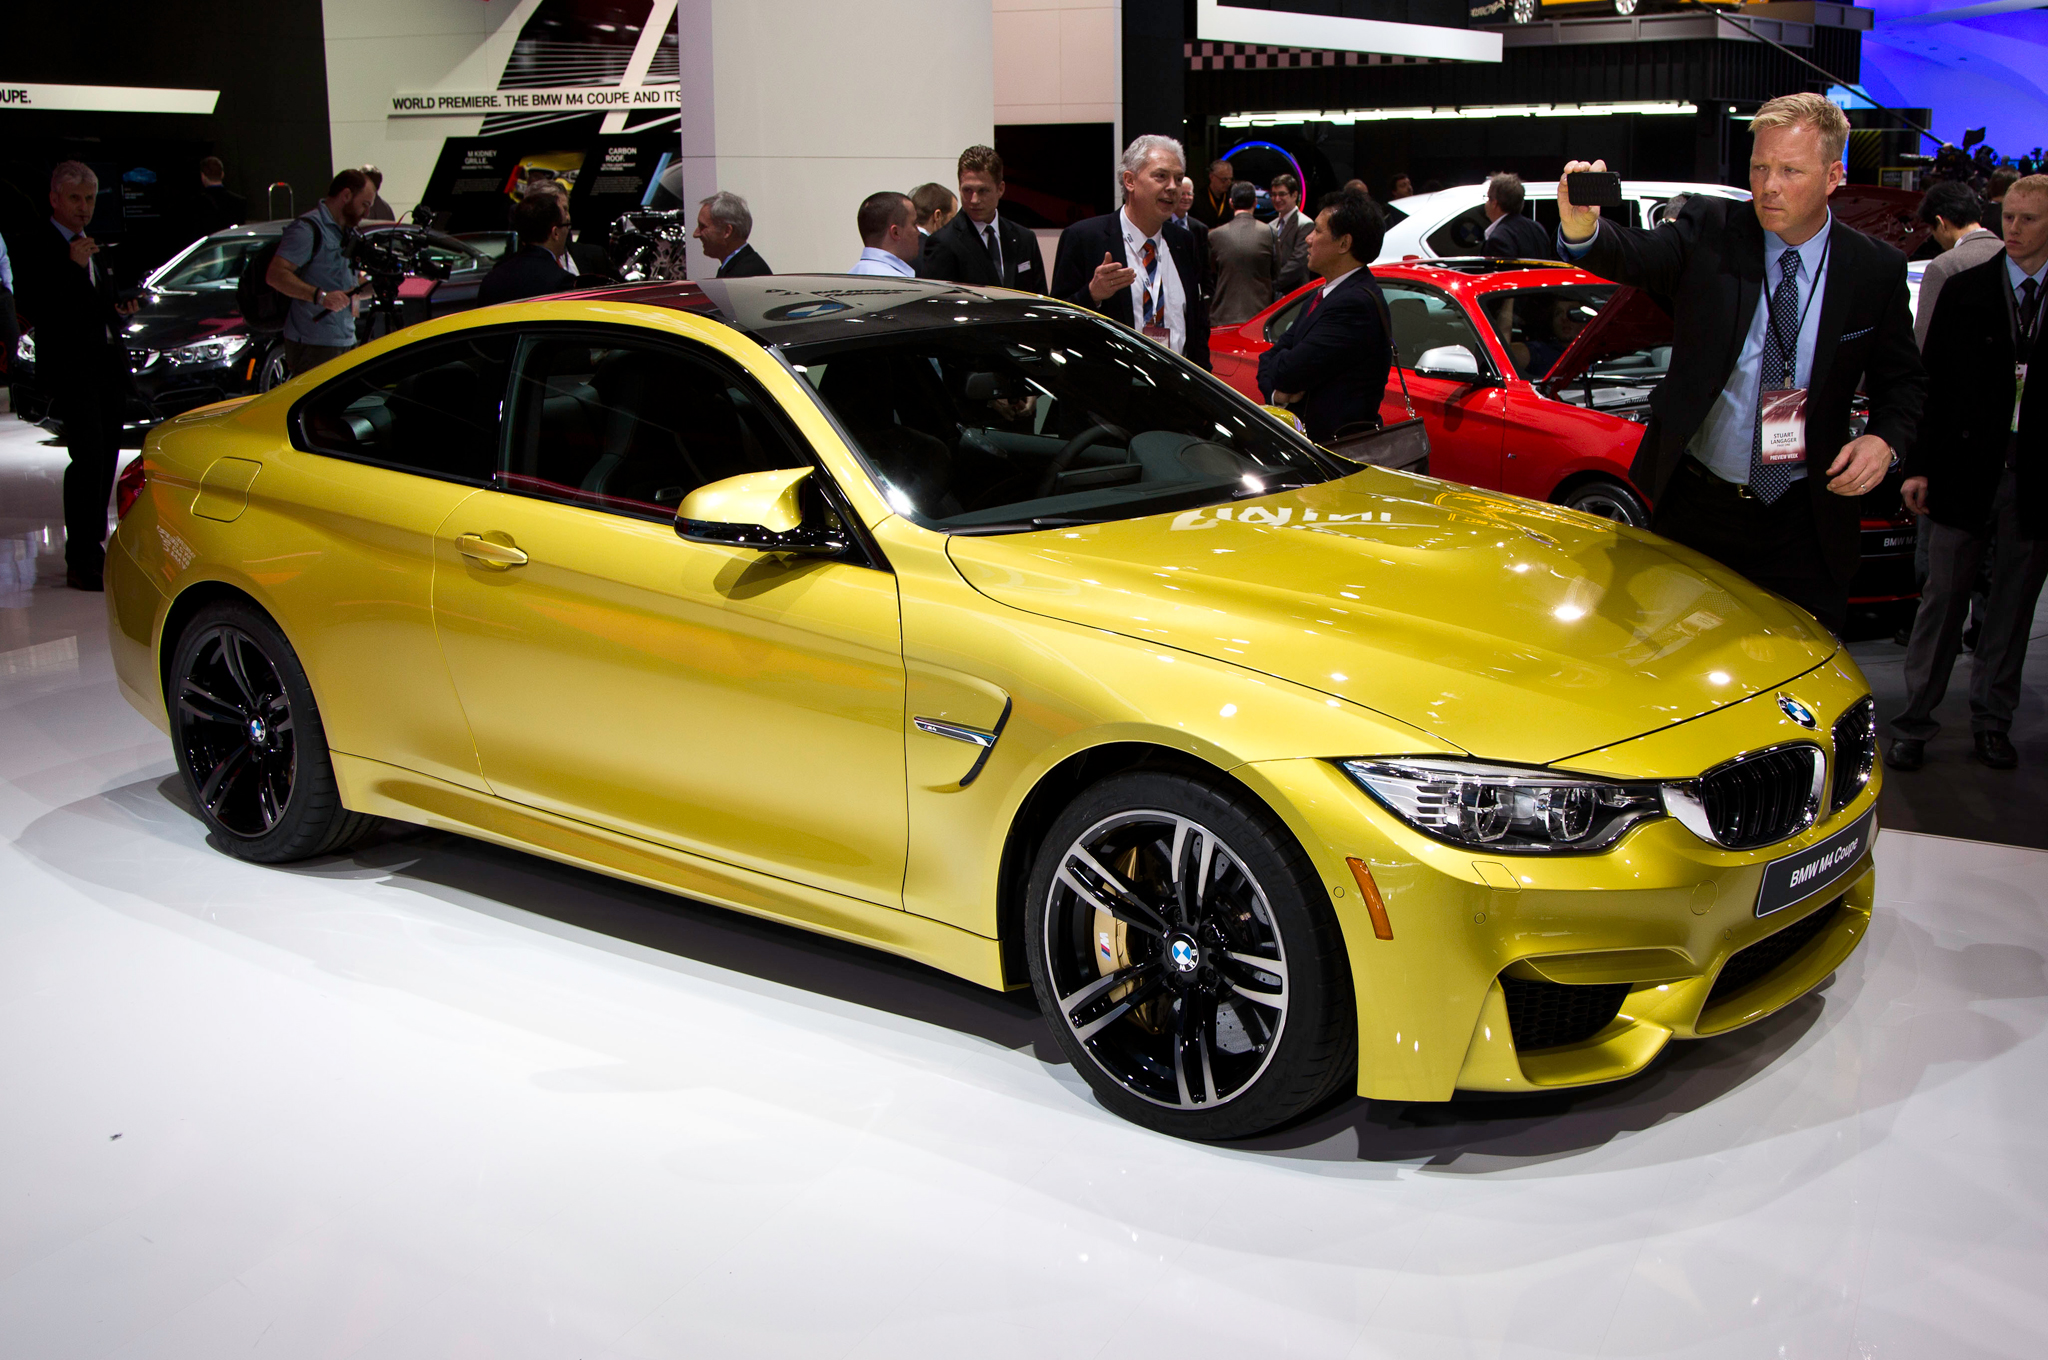 2015 Bmw M4 Front Side View (Photo 6 of 41)